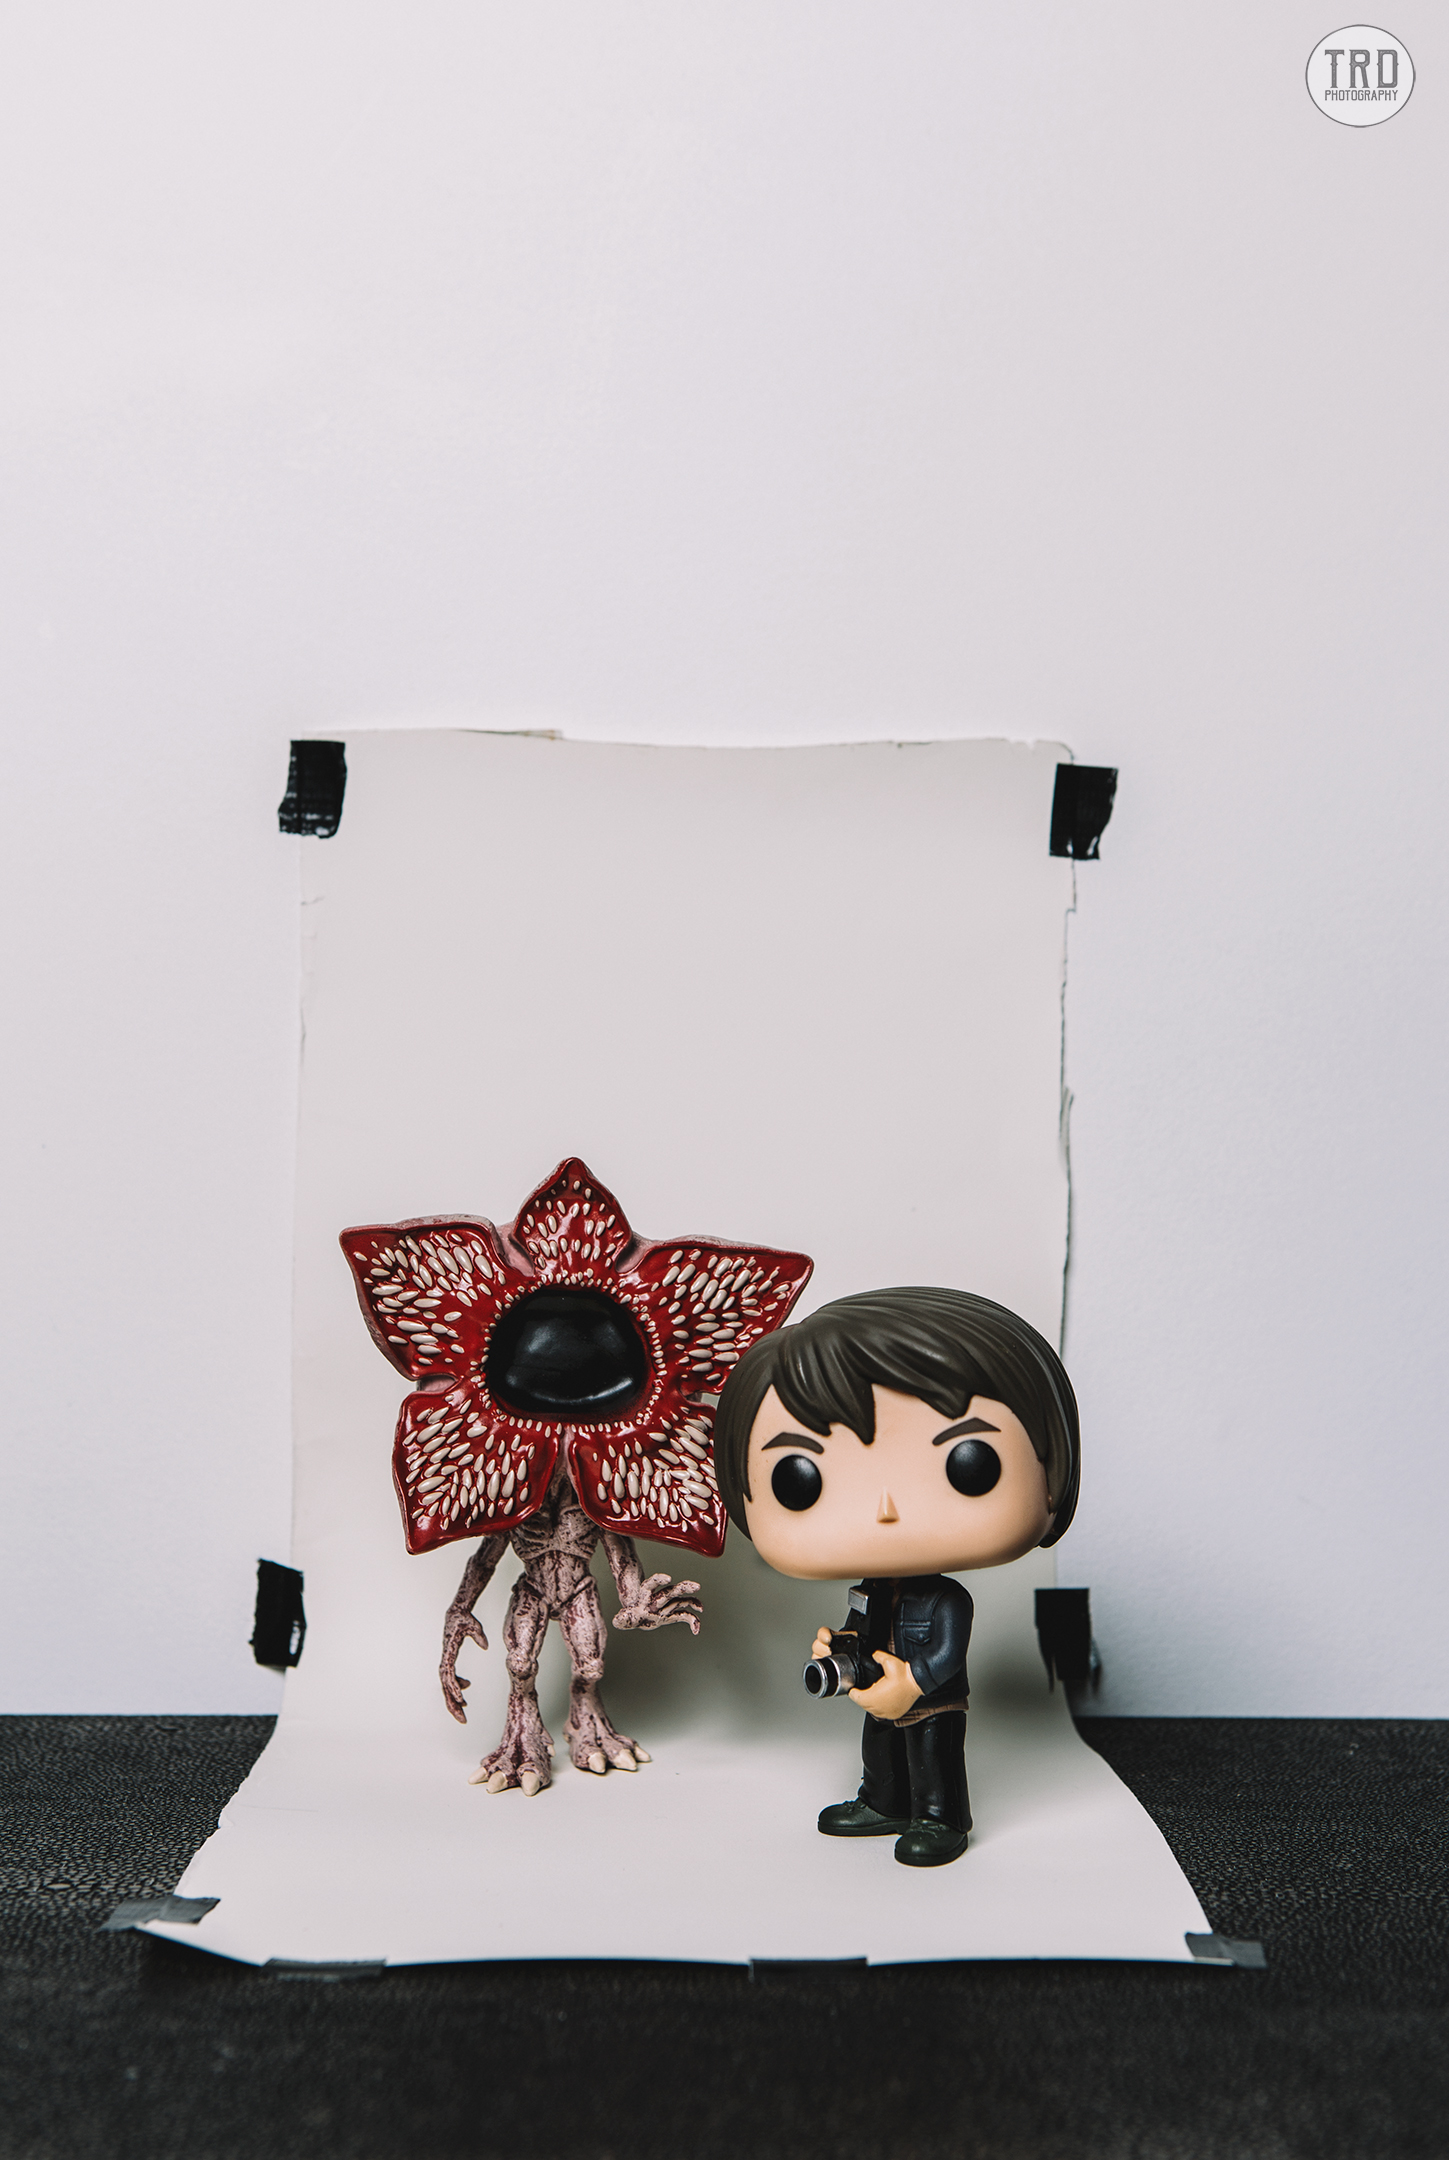 Behind the Scenes of a Strange Photoshoot.... Pop Toy Photo by TRD Photography